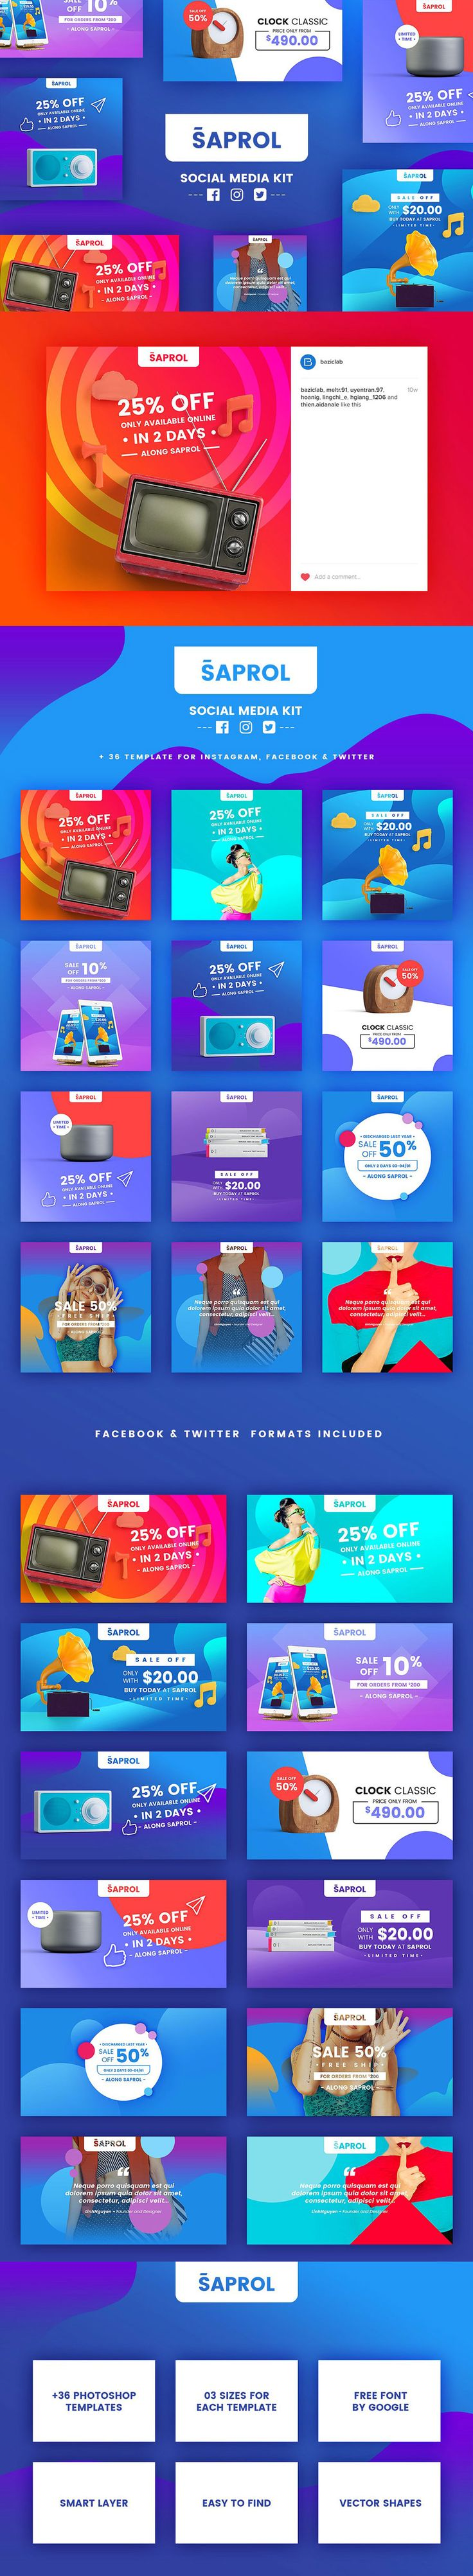 #Freebies : Saprol #SocialMedia Kit a handy tool that would turn your #artwork into engaging promo images for social media. Create stunning posts in a few clicks and stand out with ease using social media templates! #marketing #banners #webdesign #advertisement #fashion #branding #ideas #creative